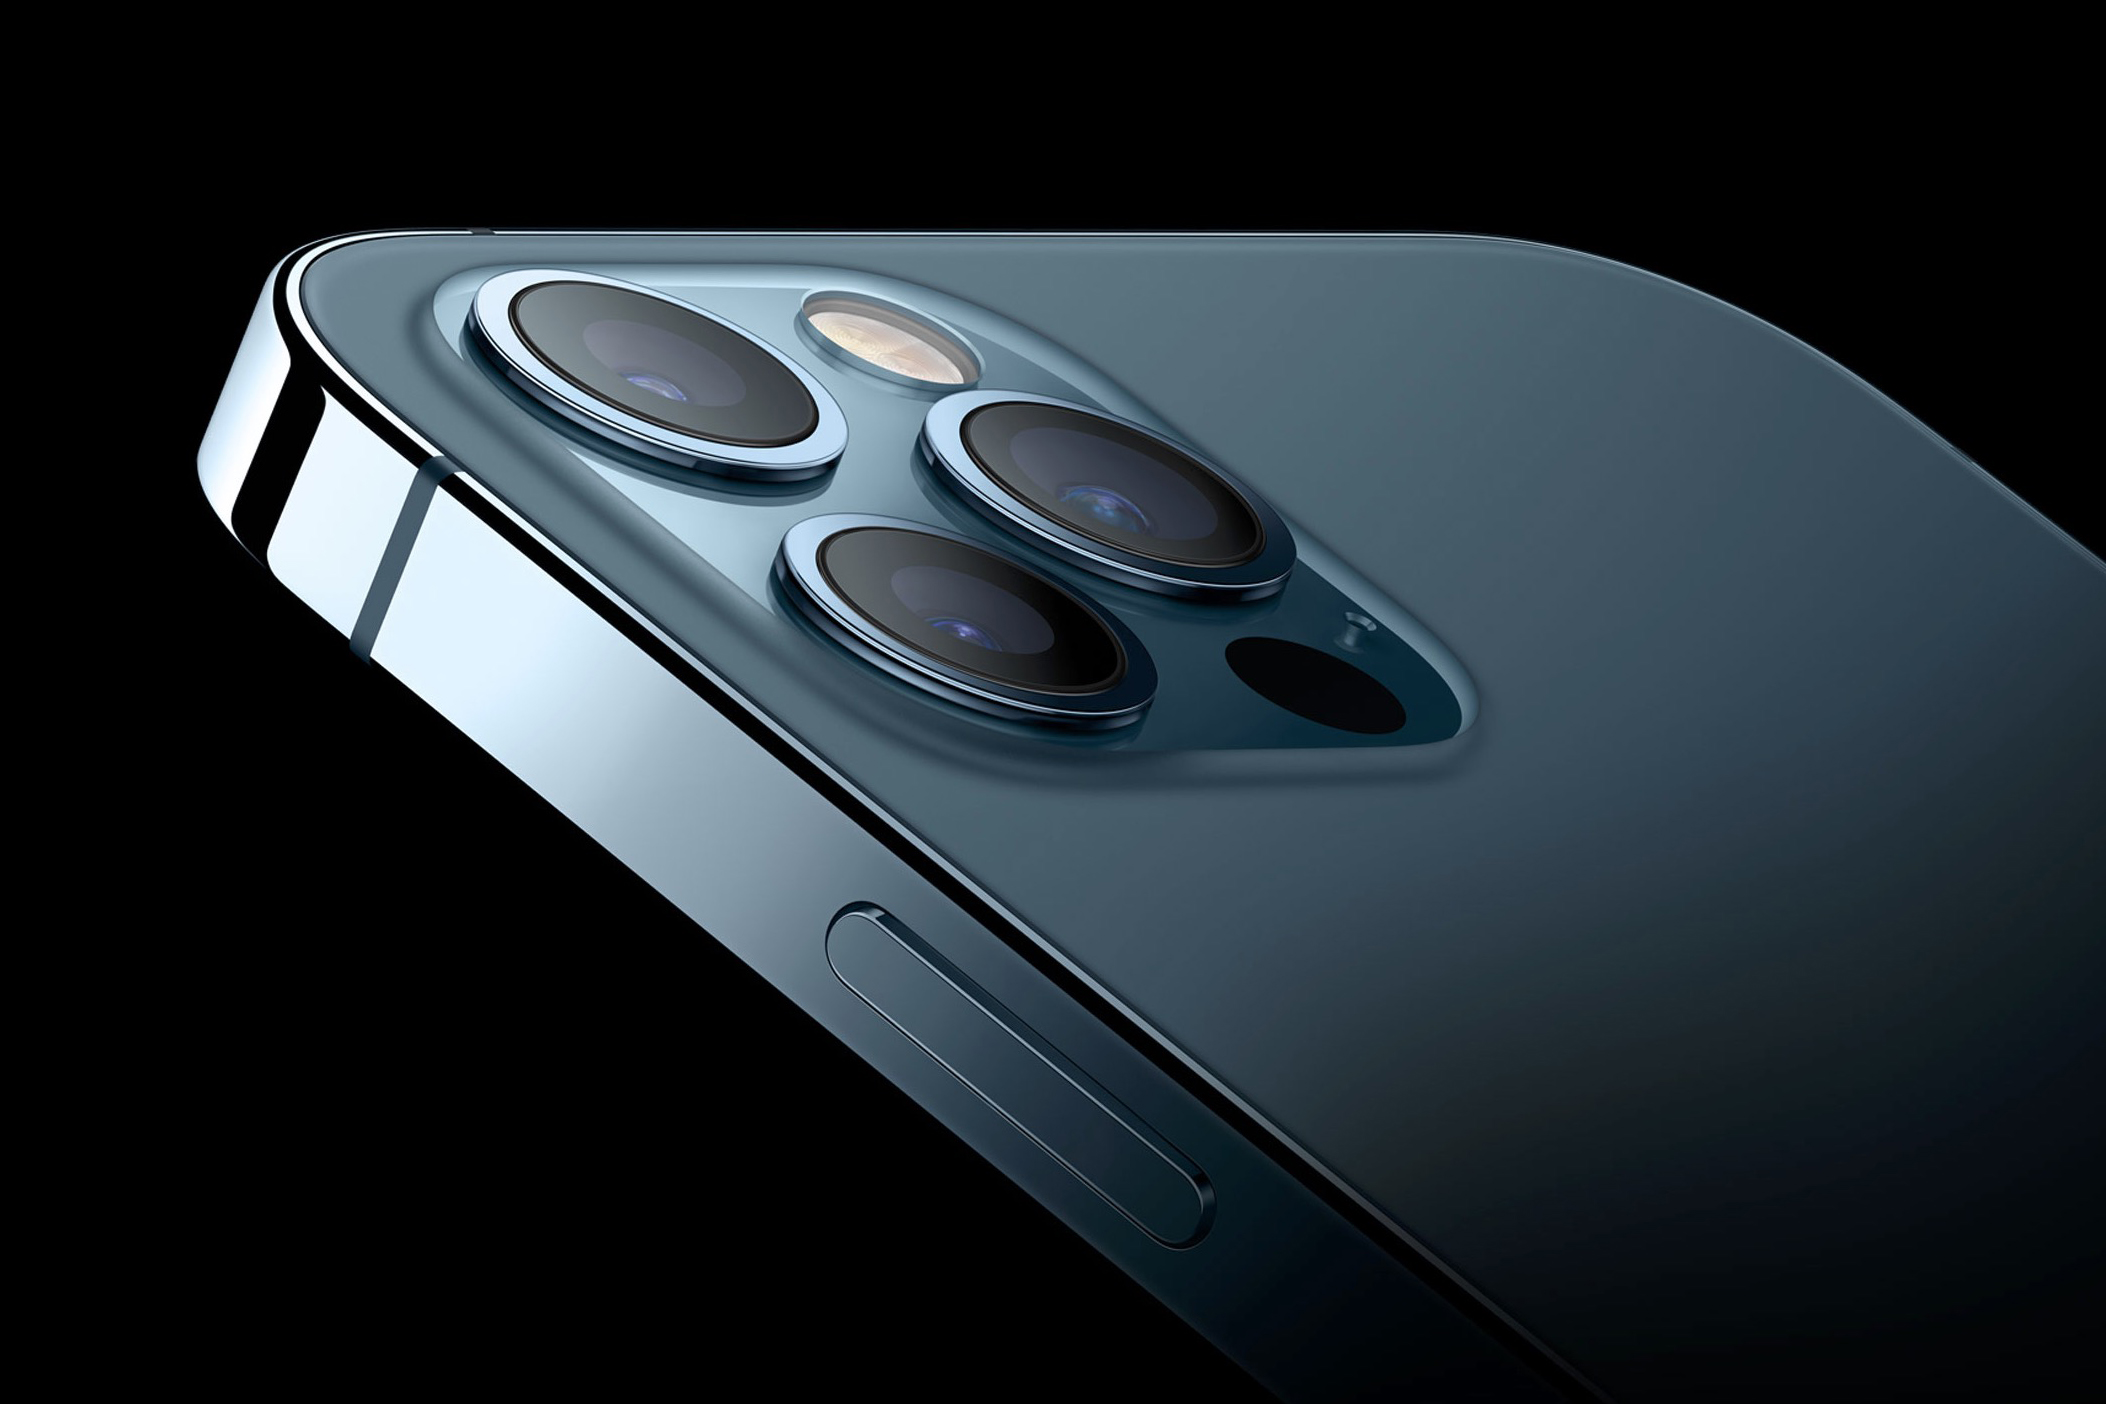 It S Great But The Max Should Be Even Better Iphone 12 Pro Camera Review Round Up Digital Photography Review